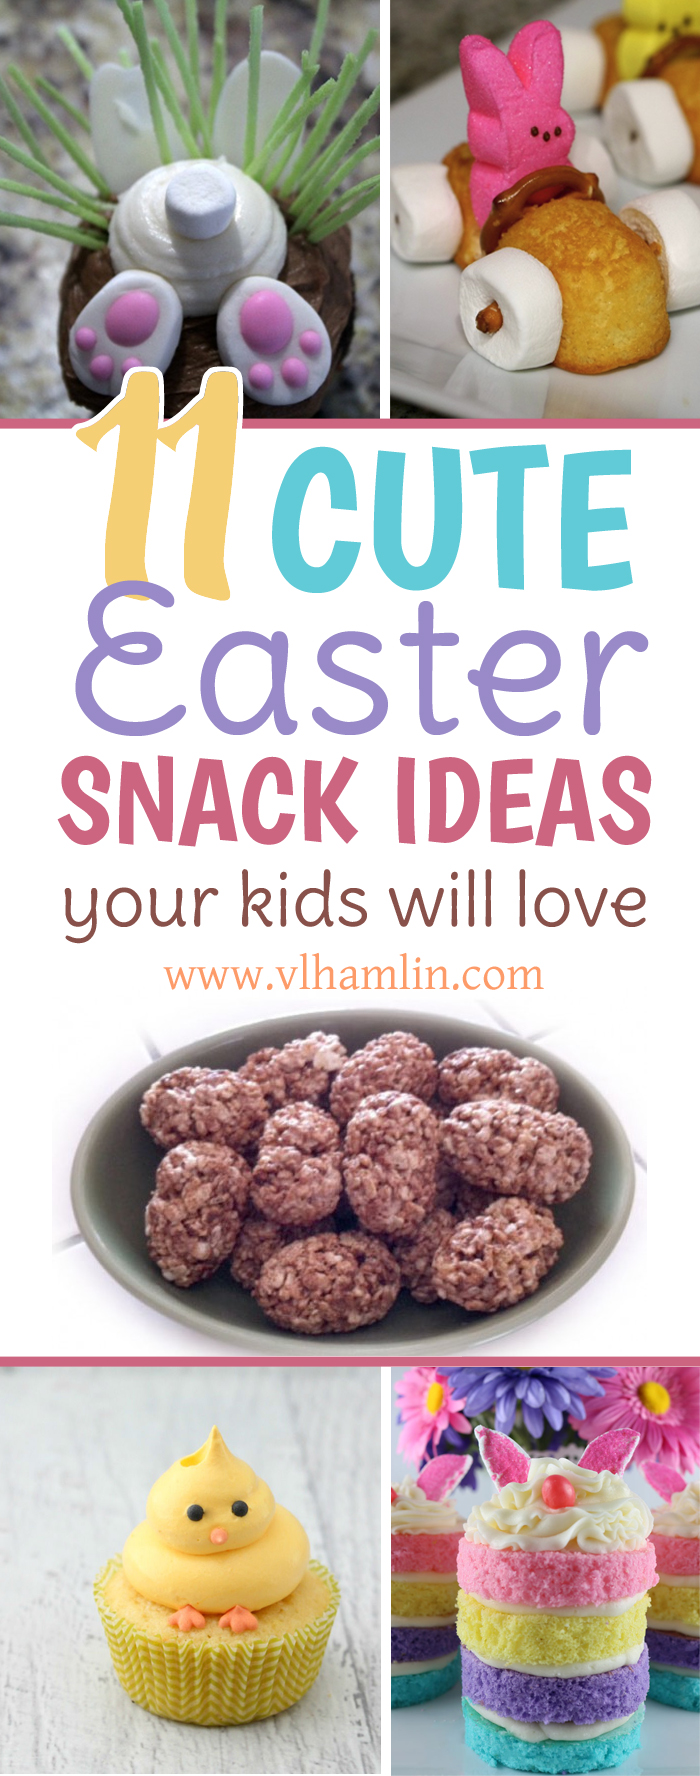 11 Cute Easter Snack Ideas Your Kids Will Love | Looking for some cute Easter snack ideas that your kids will love? Look no further - here's 11 adorable treats that are perfect for sneaking into their Easter baskets! | Food Life Design